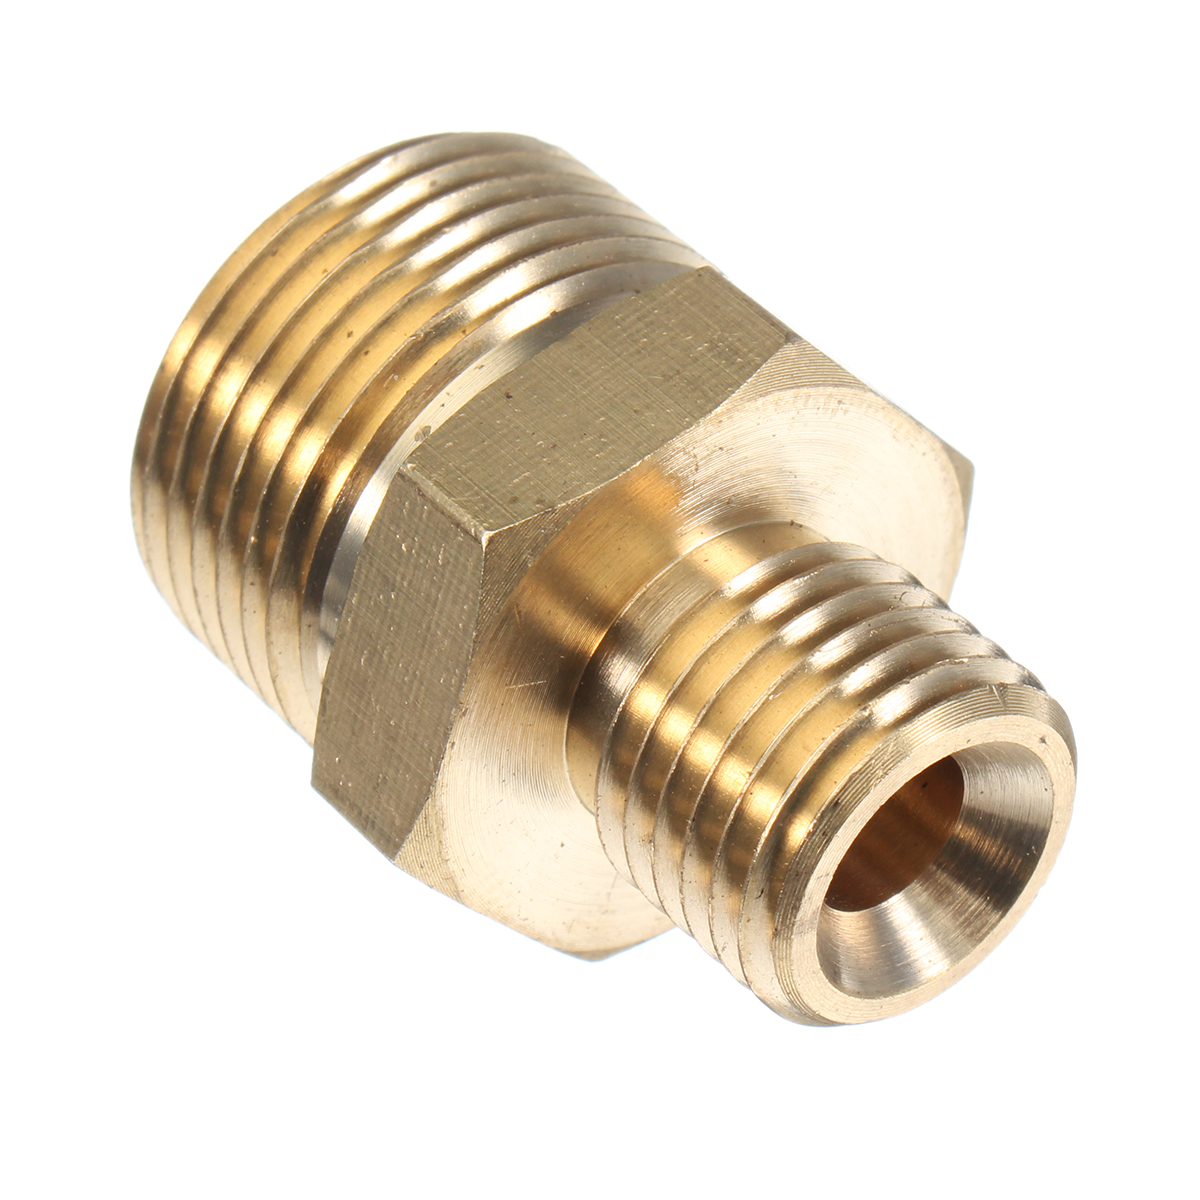 M22 Male To 1 4 Male Adapter Brass Pressure Washer Hose